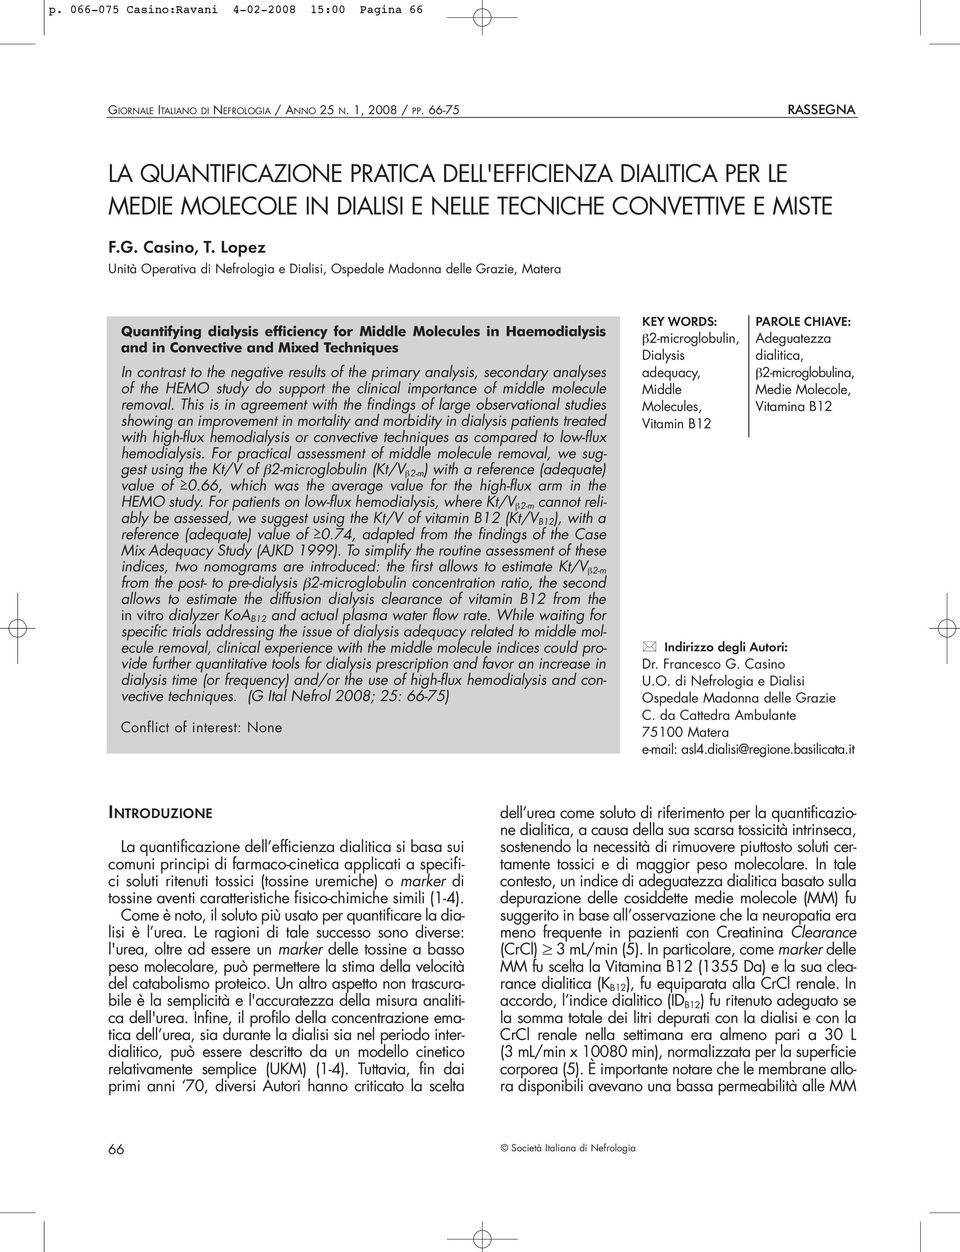 Lopez Unità Operativa di Nefrologia e Dialisi, Ospedale Madonna delle Grazie, Matera Quantifying dialysis efficiency for Middle Molecules in Haemodialysis and in Convective and Mixed Techniques In